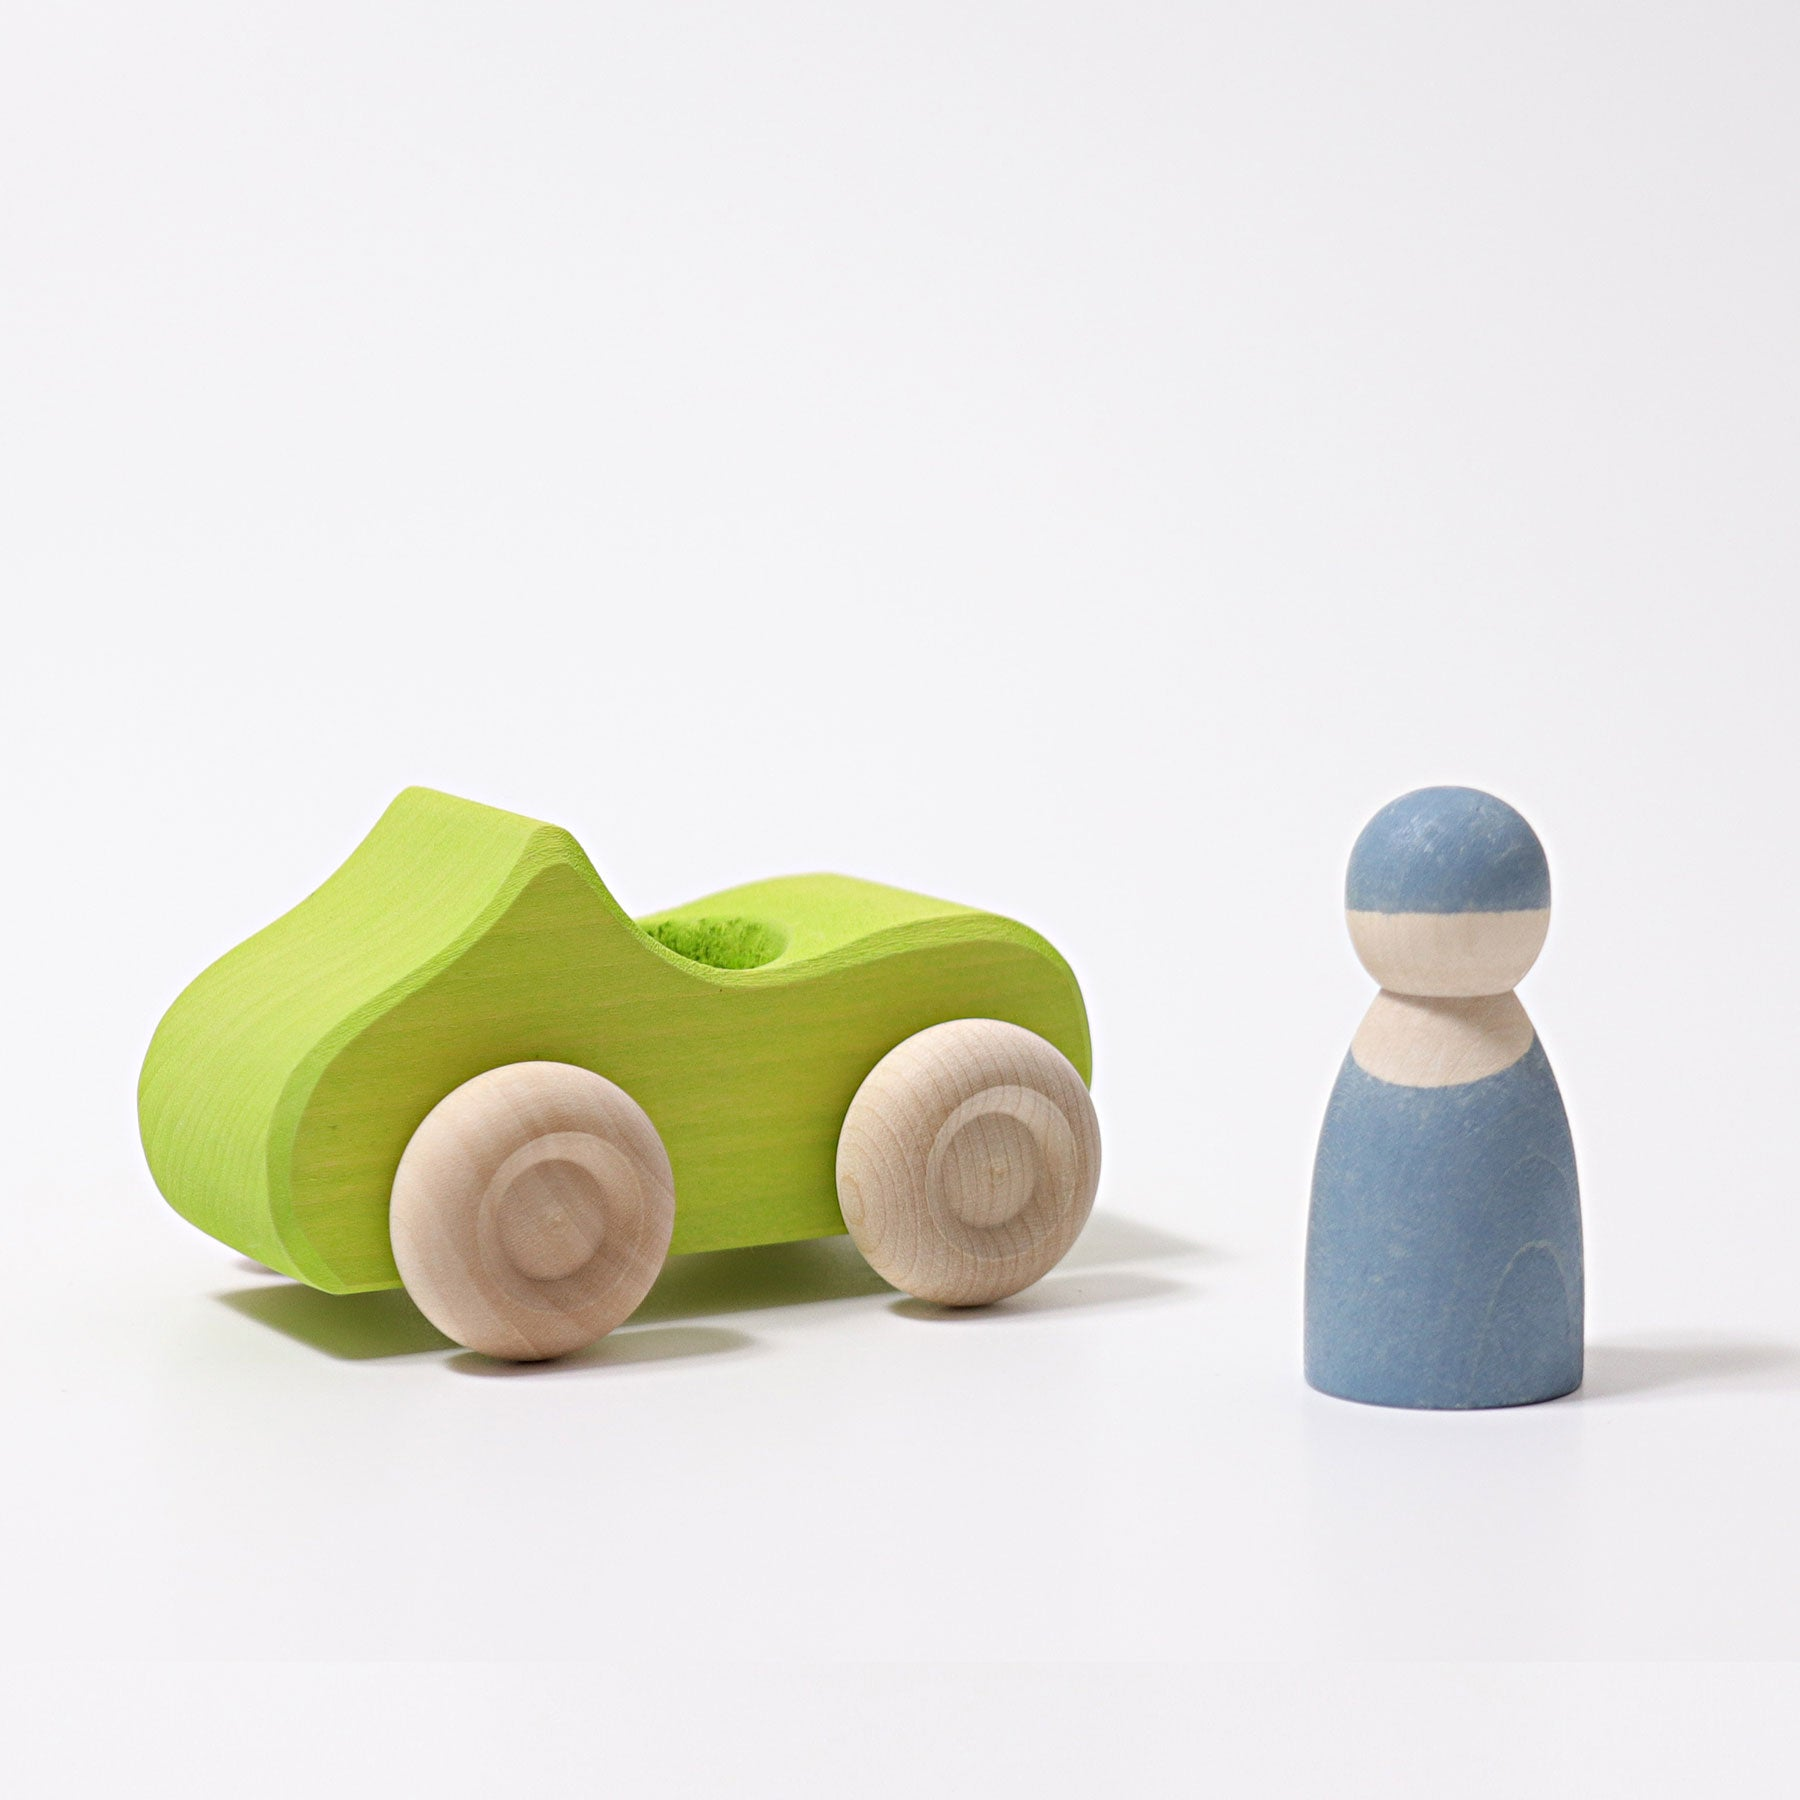 Small Green wooden Convertible Car next to a blue wooden peg doll on a white background.